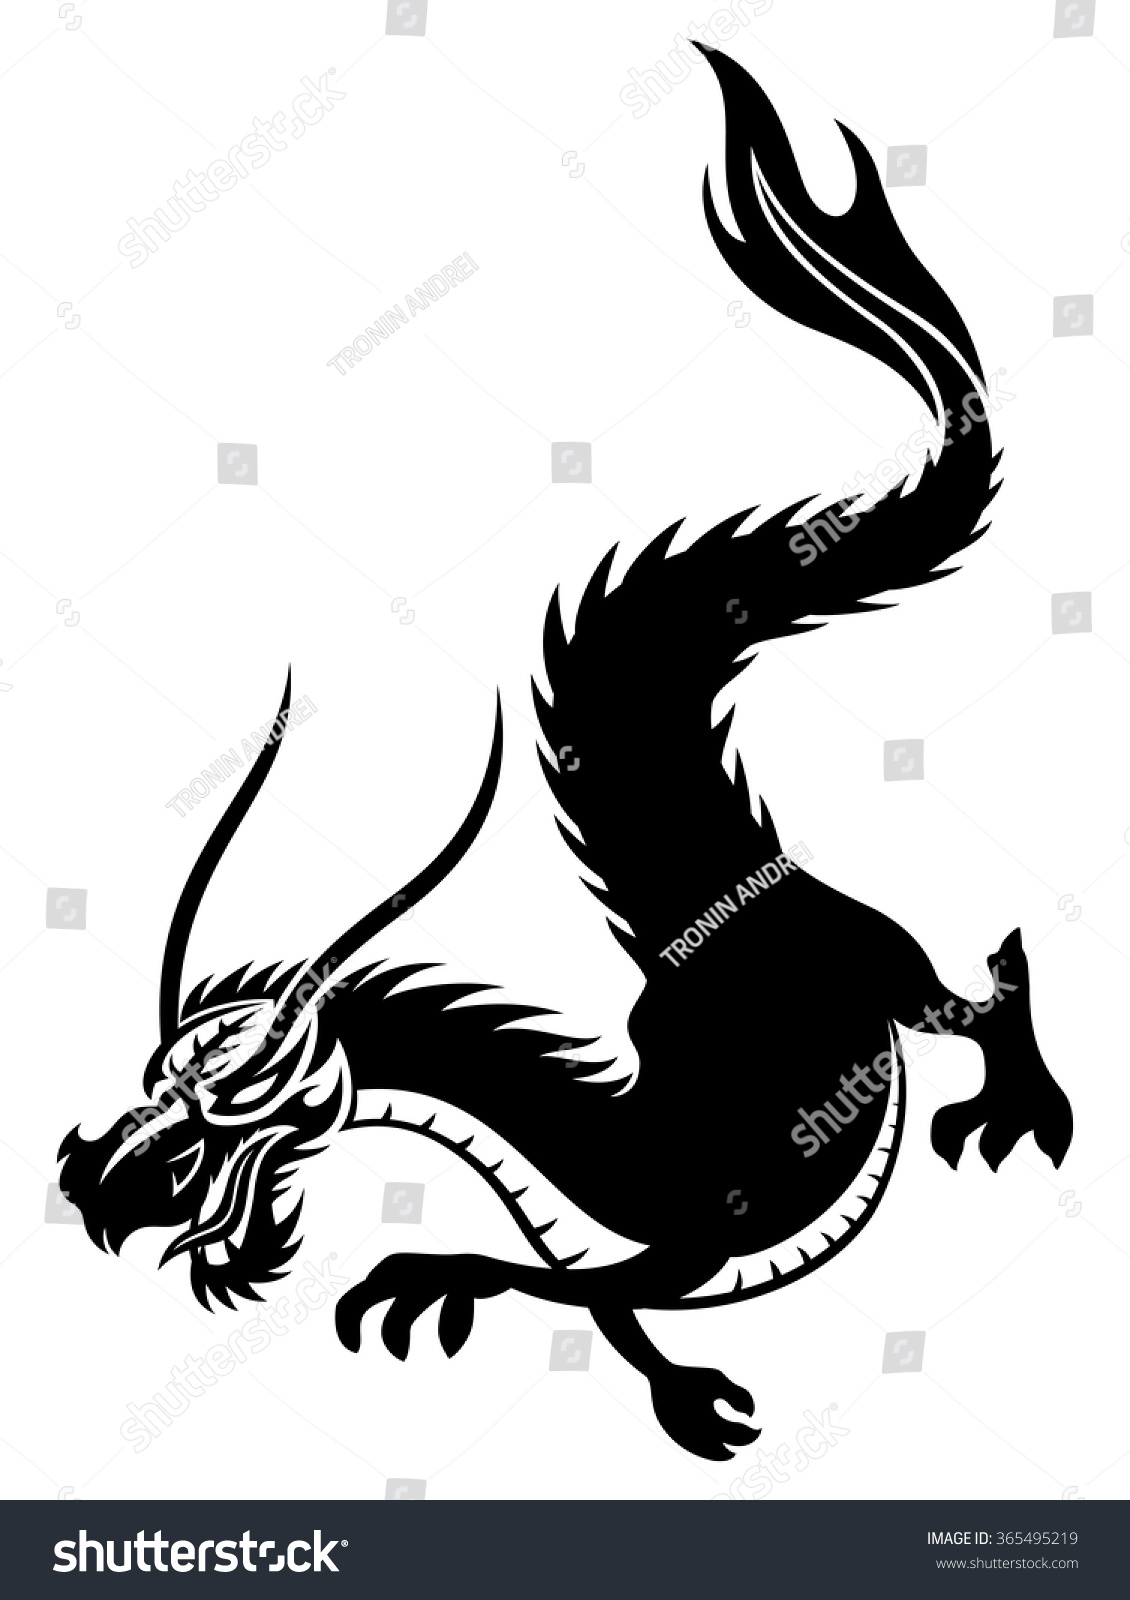 Dragon vector sign stock vector 313643336 shutterstock - Dragon Vector Sign Stock Vector 313643336 Shutterstock Vector Illustration The Sign Of The Dragon On